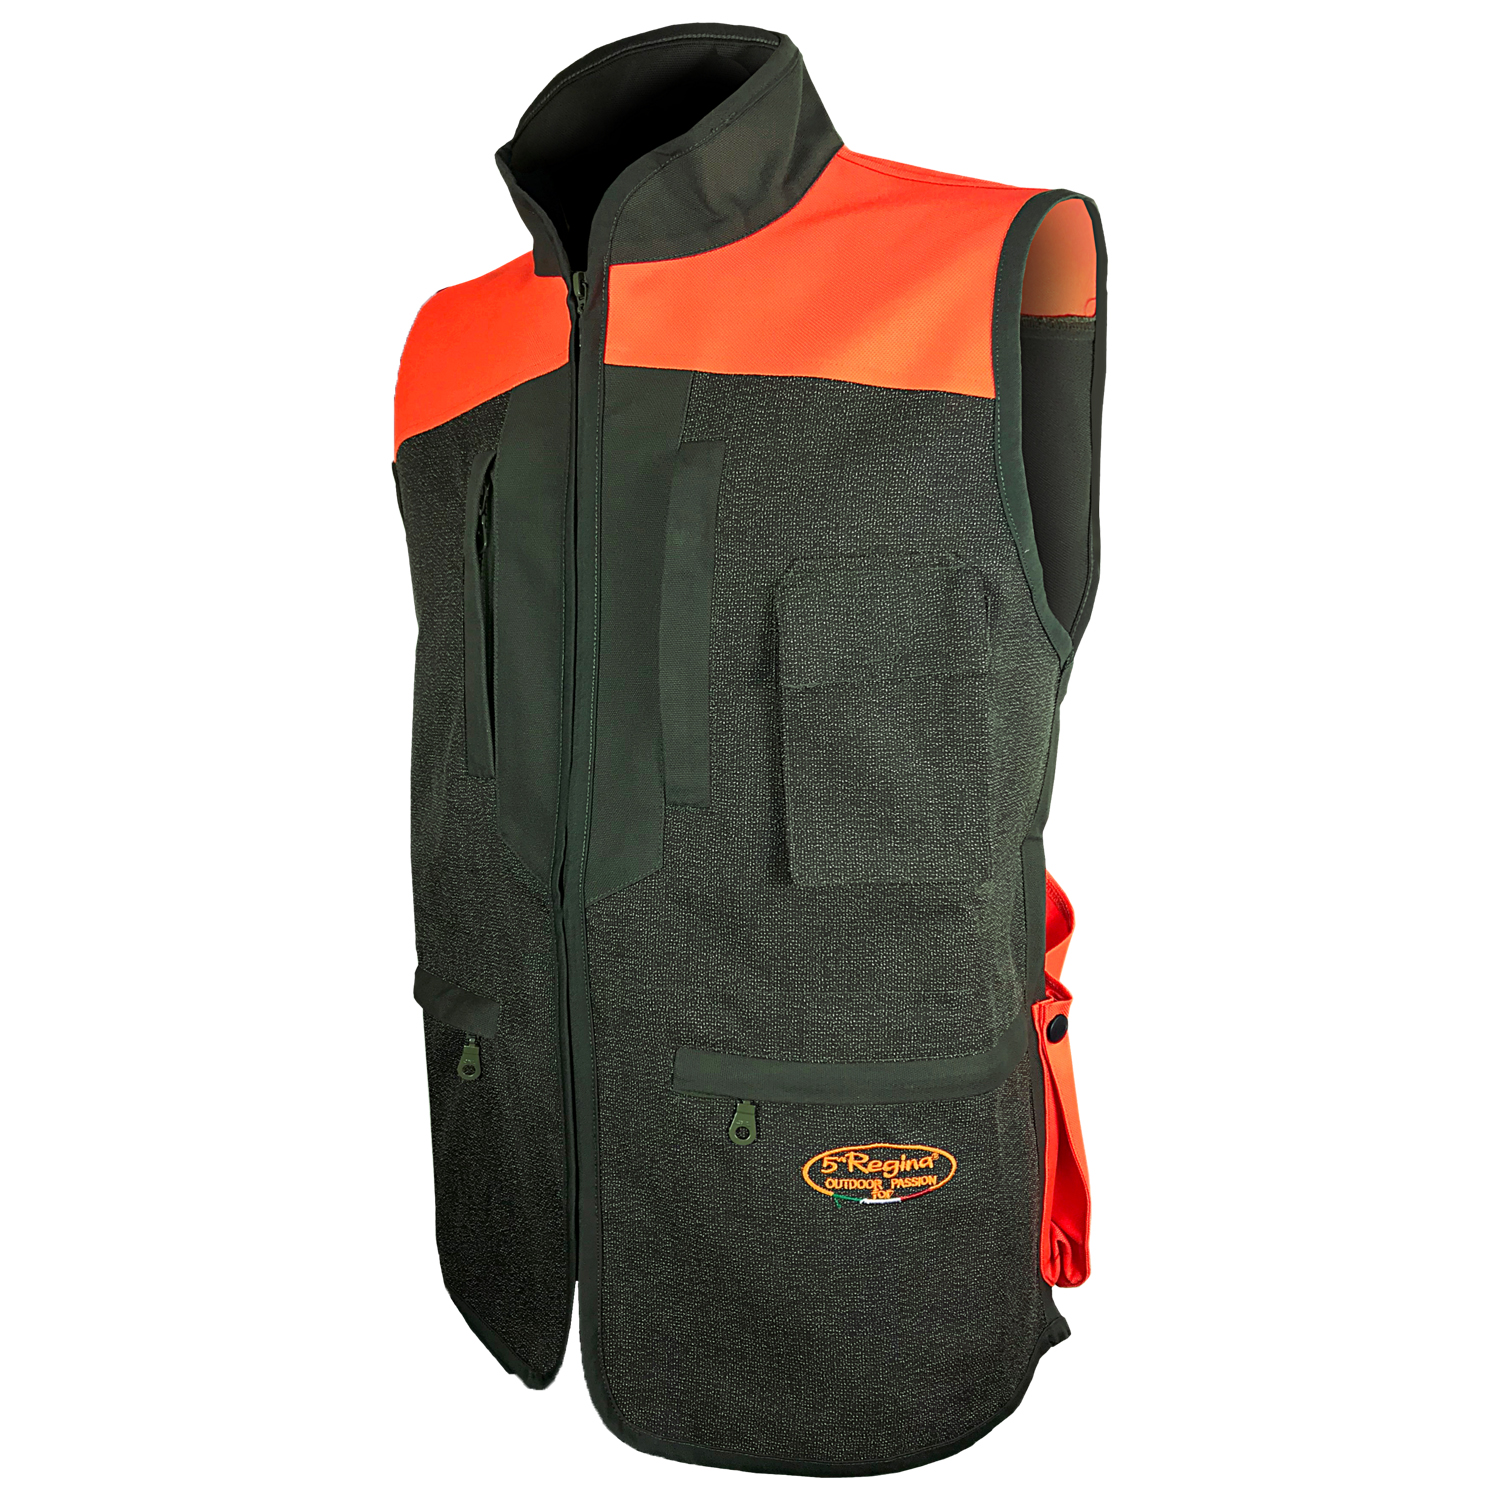 Vest hunting wild boar with orange kevlar cordura waterproof lined hinges